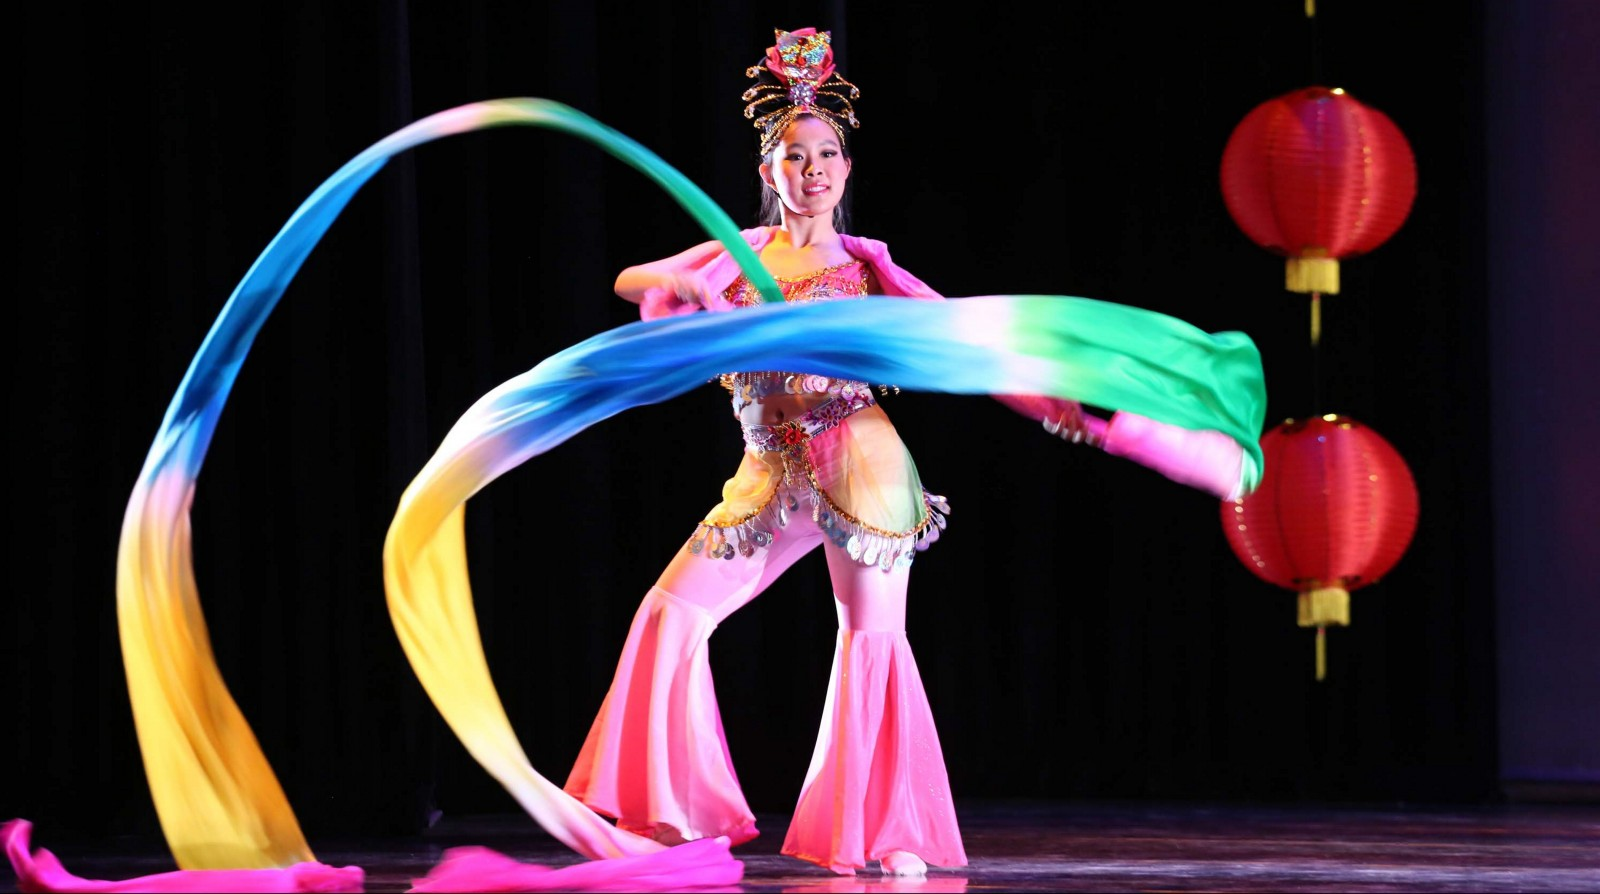 A celebration of Chinese New Year takes place Feb. 8 at the University at Buffalo Center for the Arts.